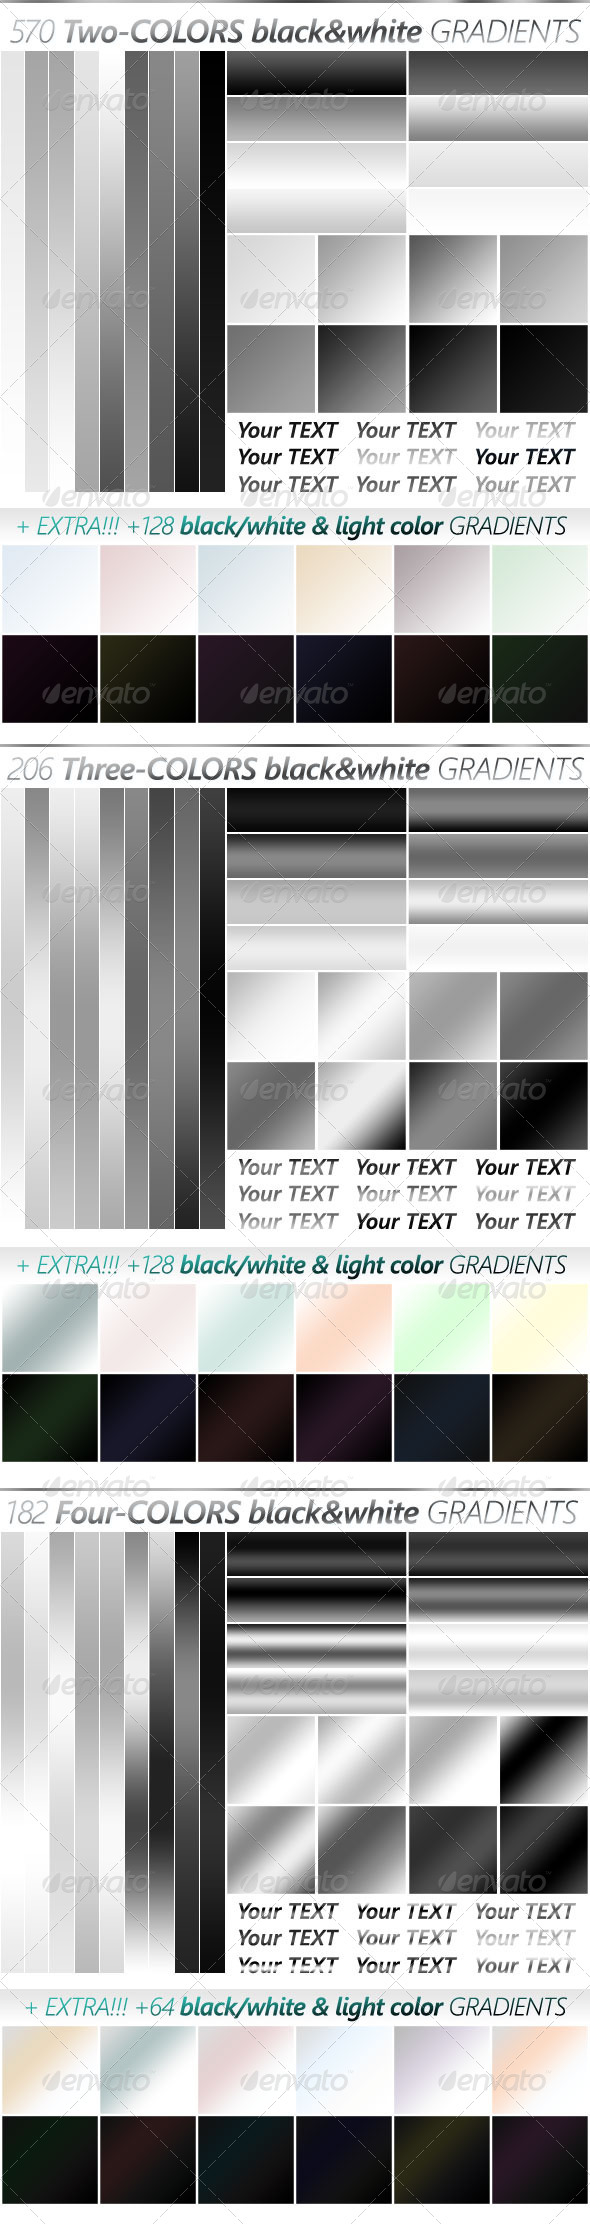 GraphicRiver The Ultimate Black & White Gradients Collection 5180739